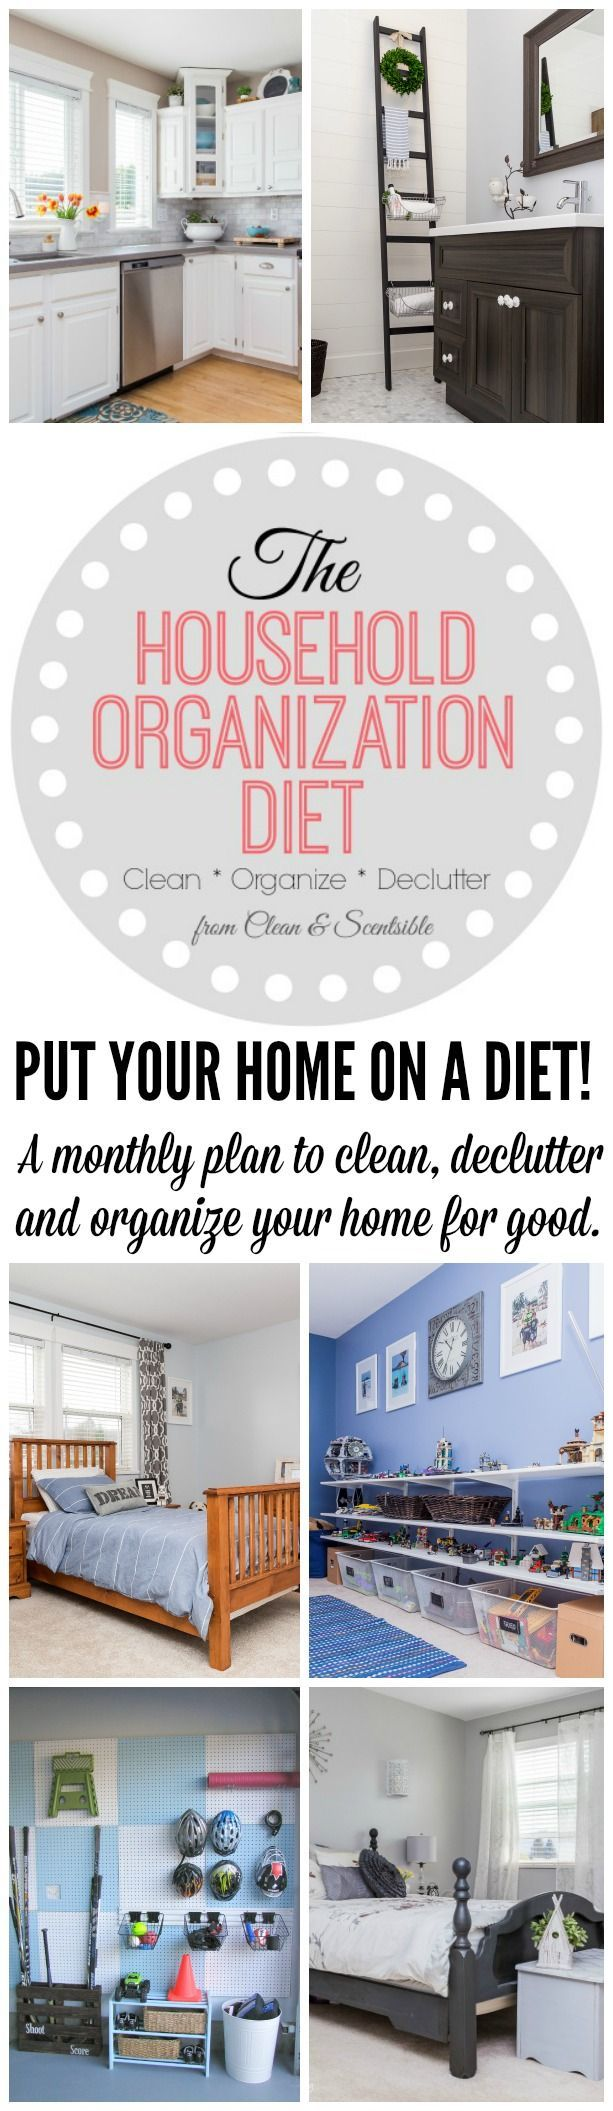 1000 images about home organization on pinterest for Declutter house plan